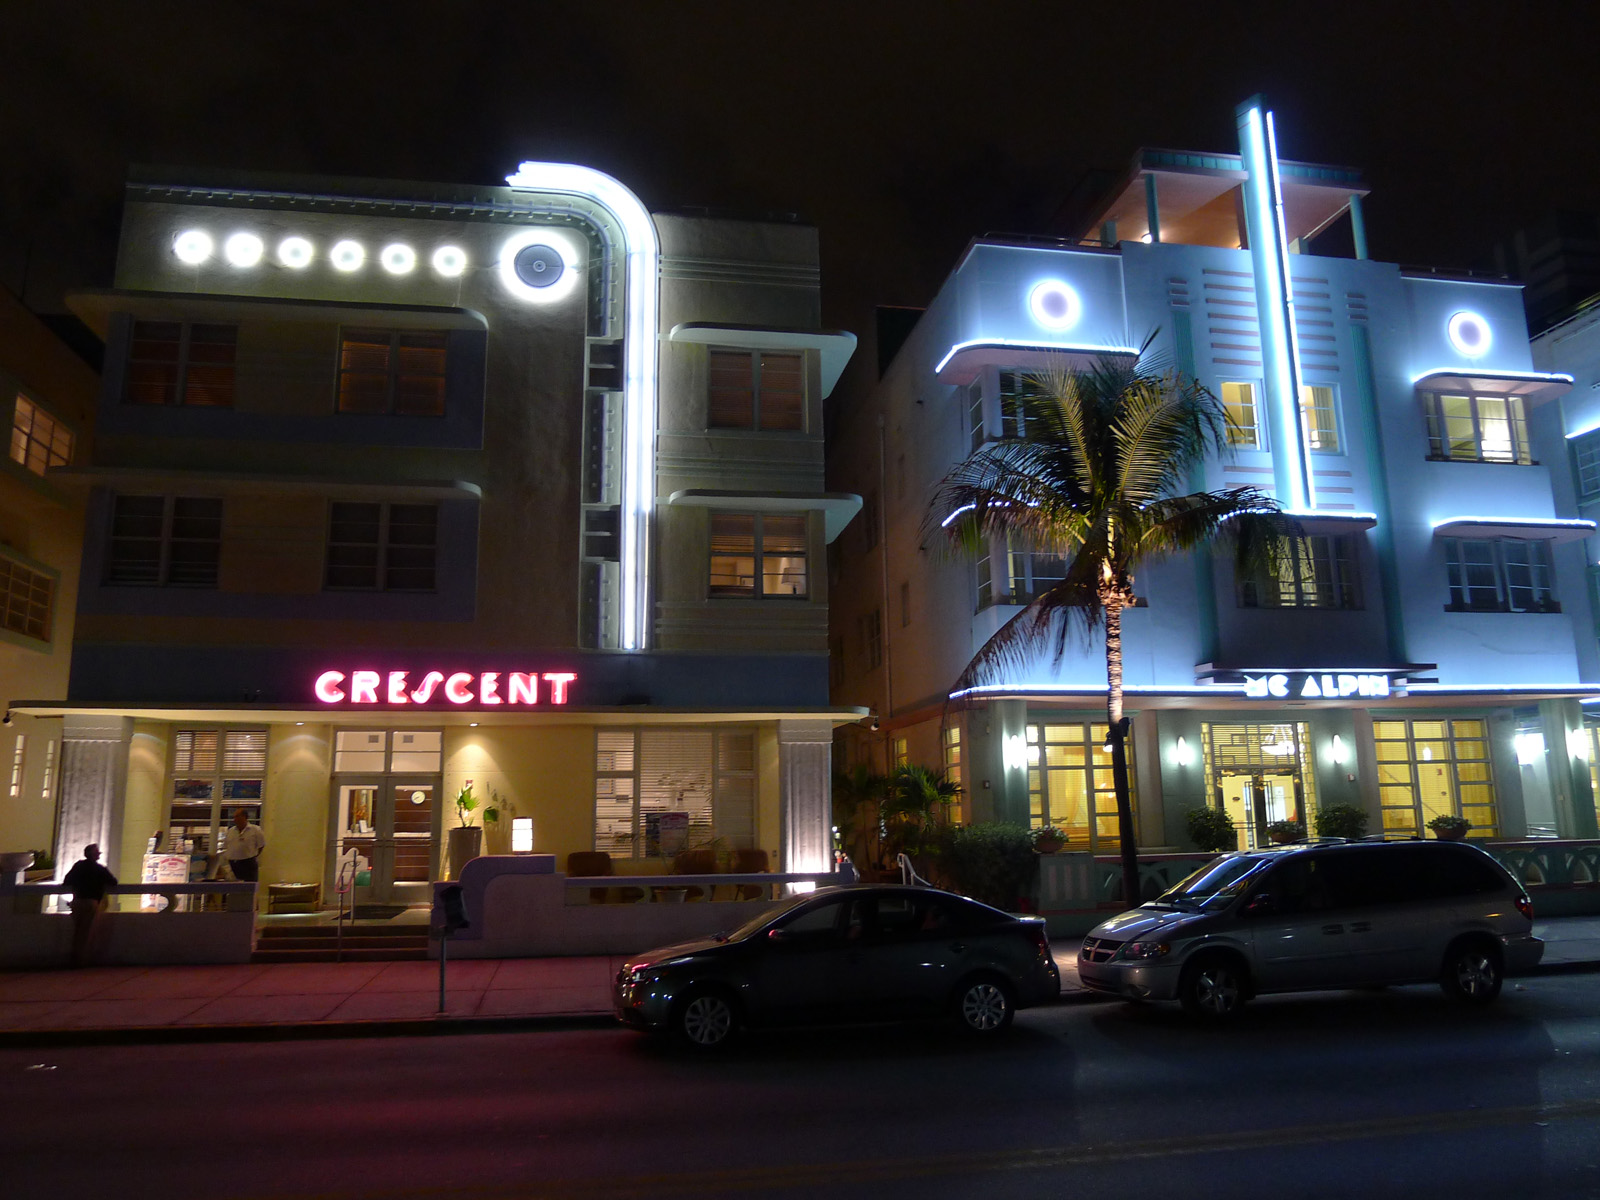 Art deco hotels at night in South Beach Miami